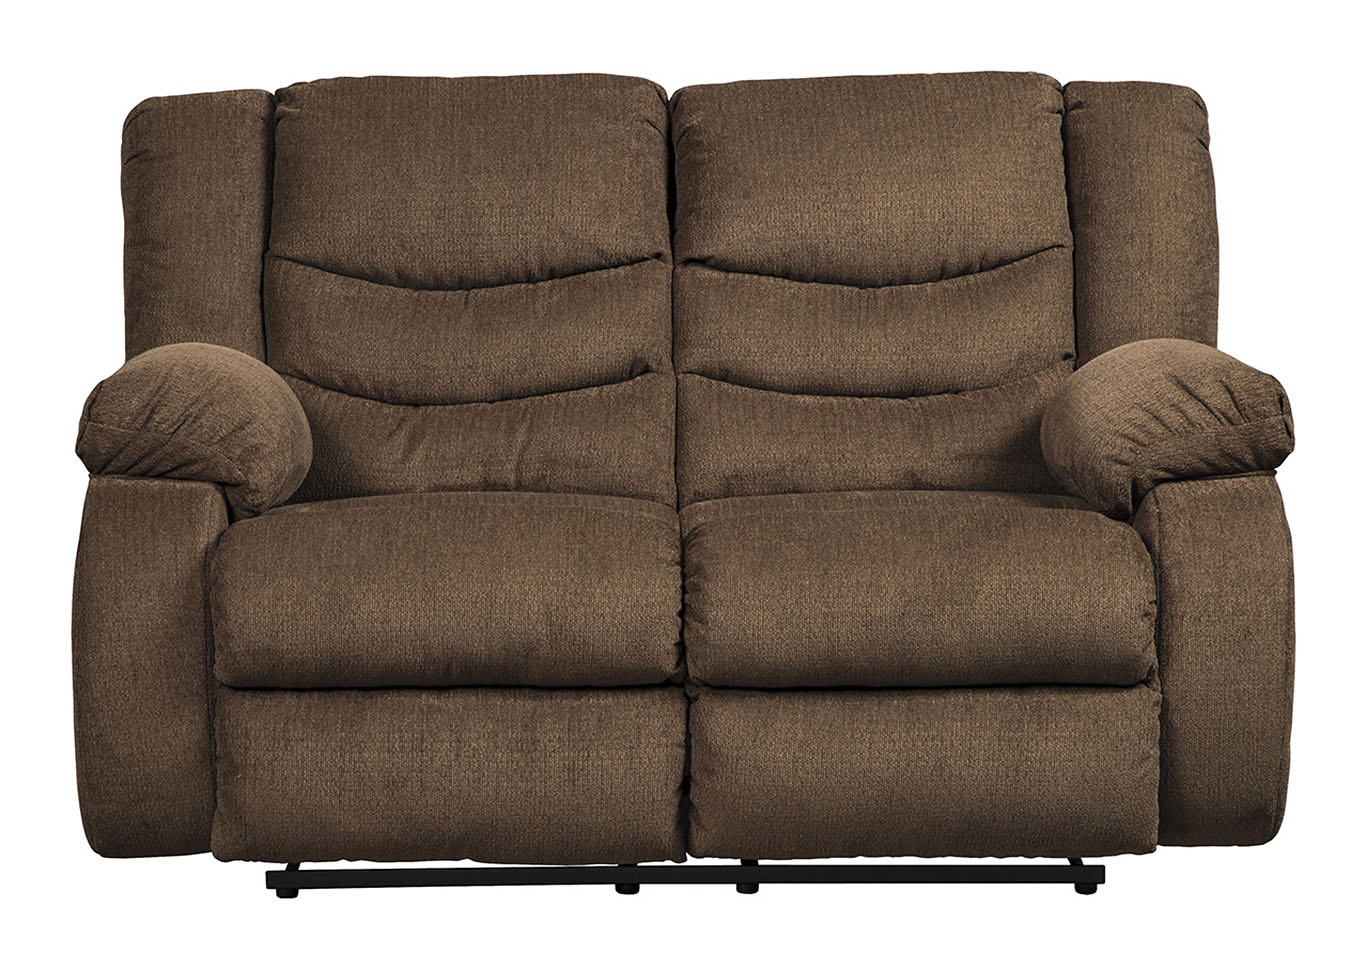 Tulen Chocolate Reclining Loveseat,Signature Design By Ashley